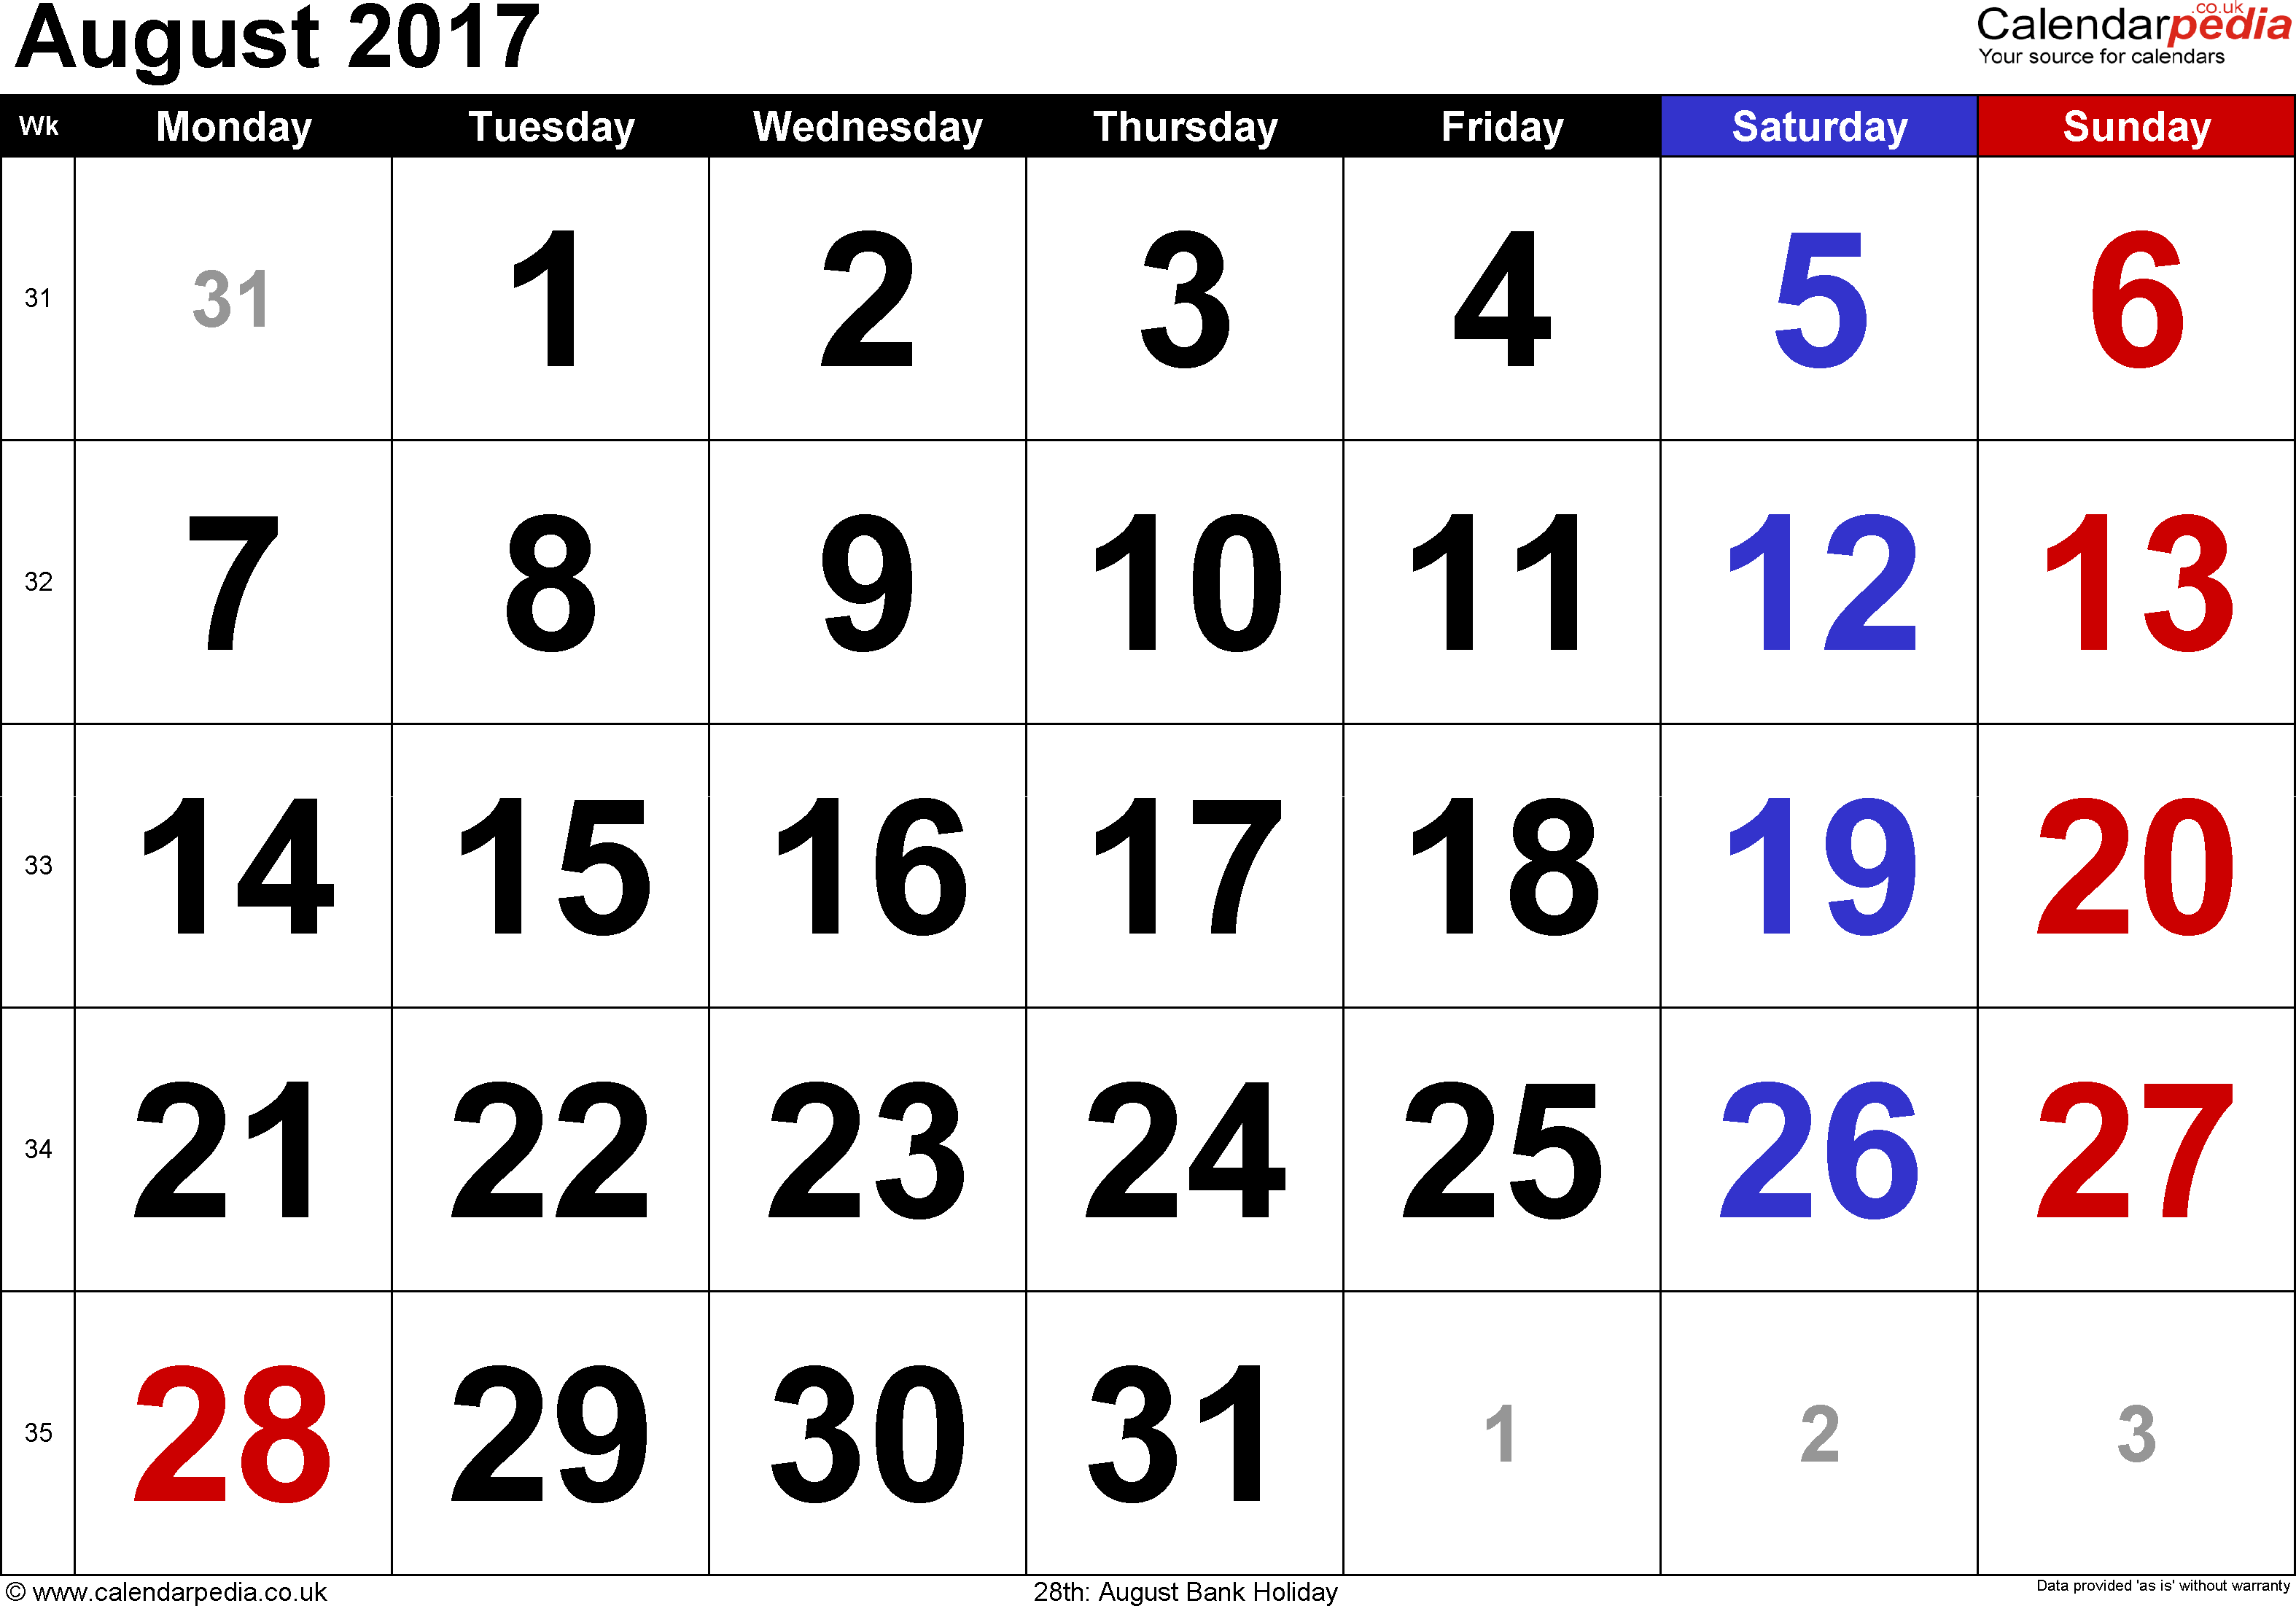 Calendar August 2017, landscape orientation, large numerals, 1 page, with UK bank holidays and week numbers